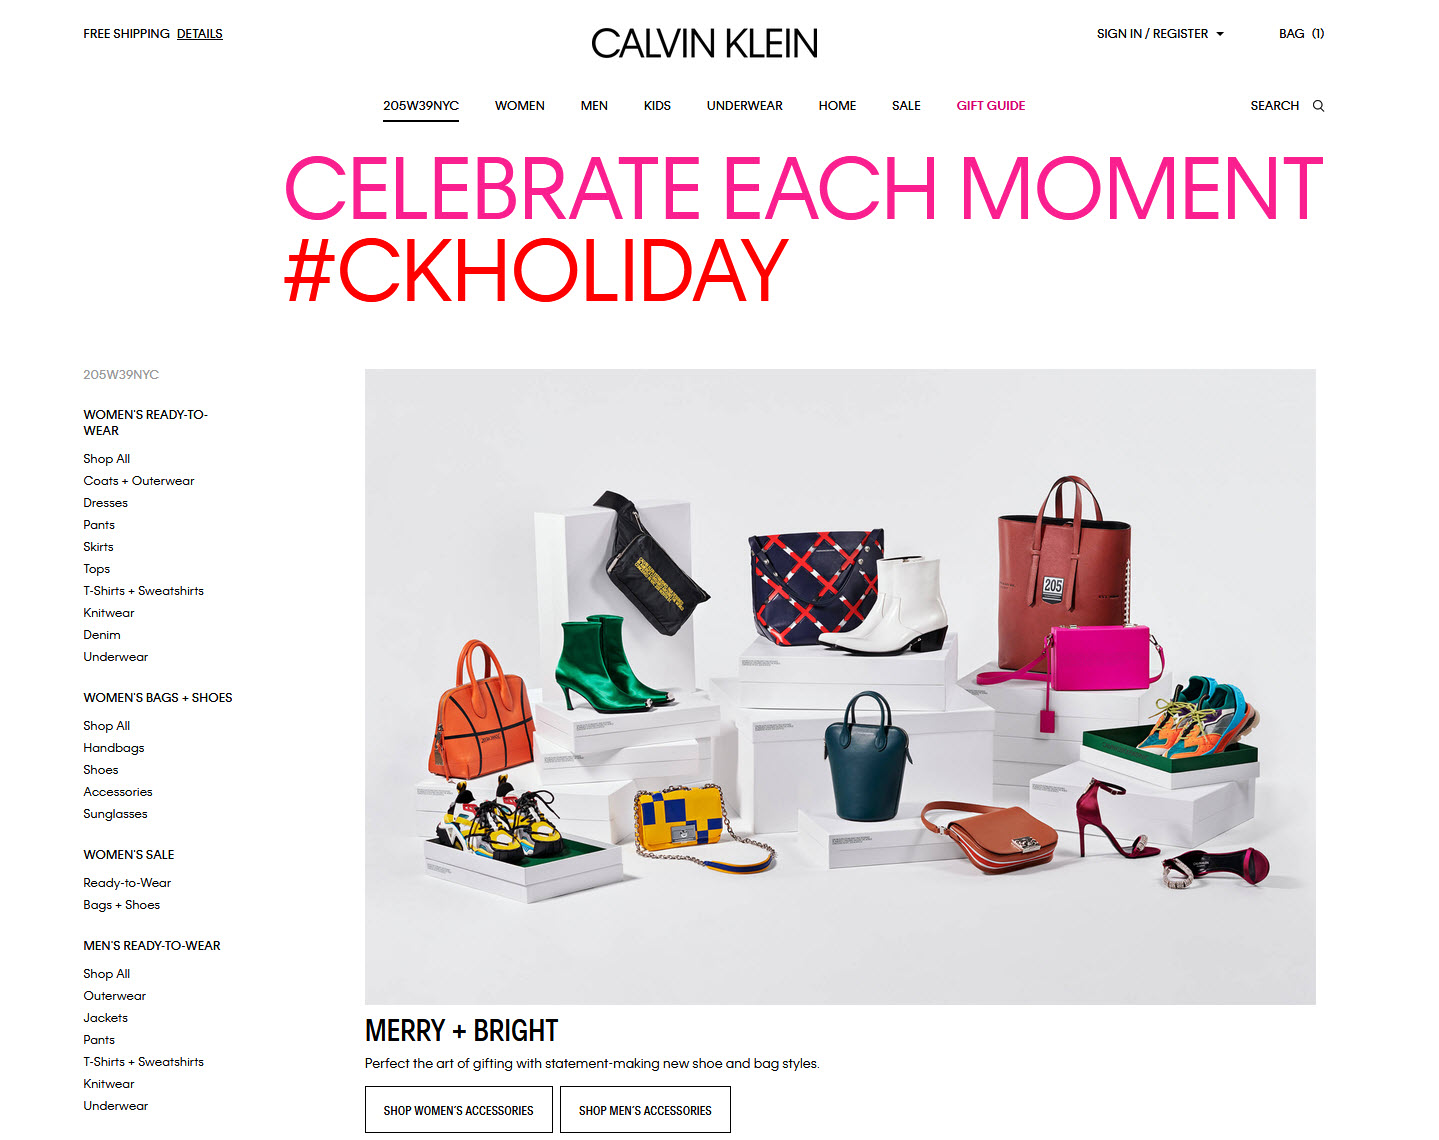 Calvin Klein and IO Team up again to establish dev ops